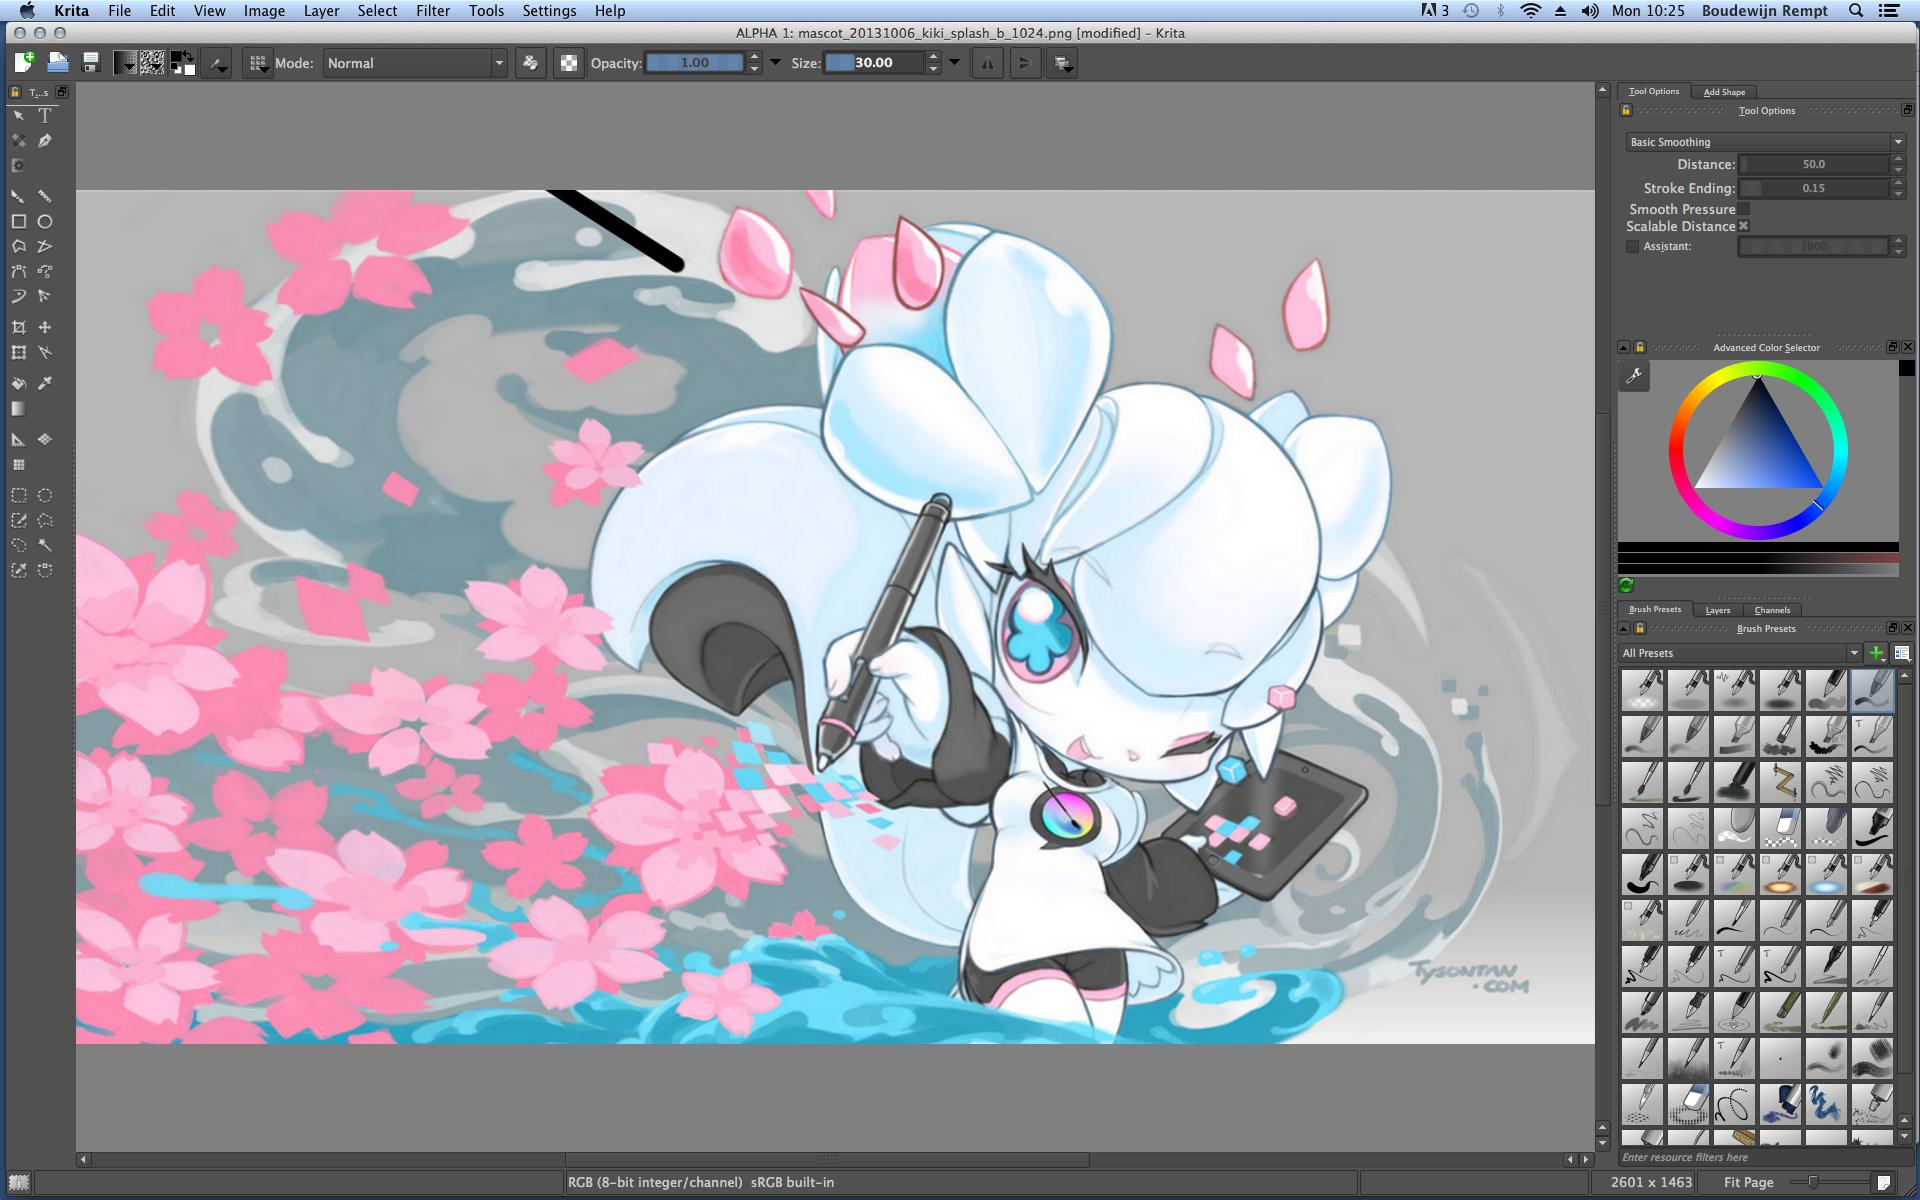 interface de Krita